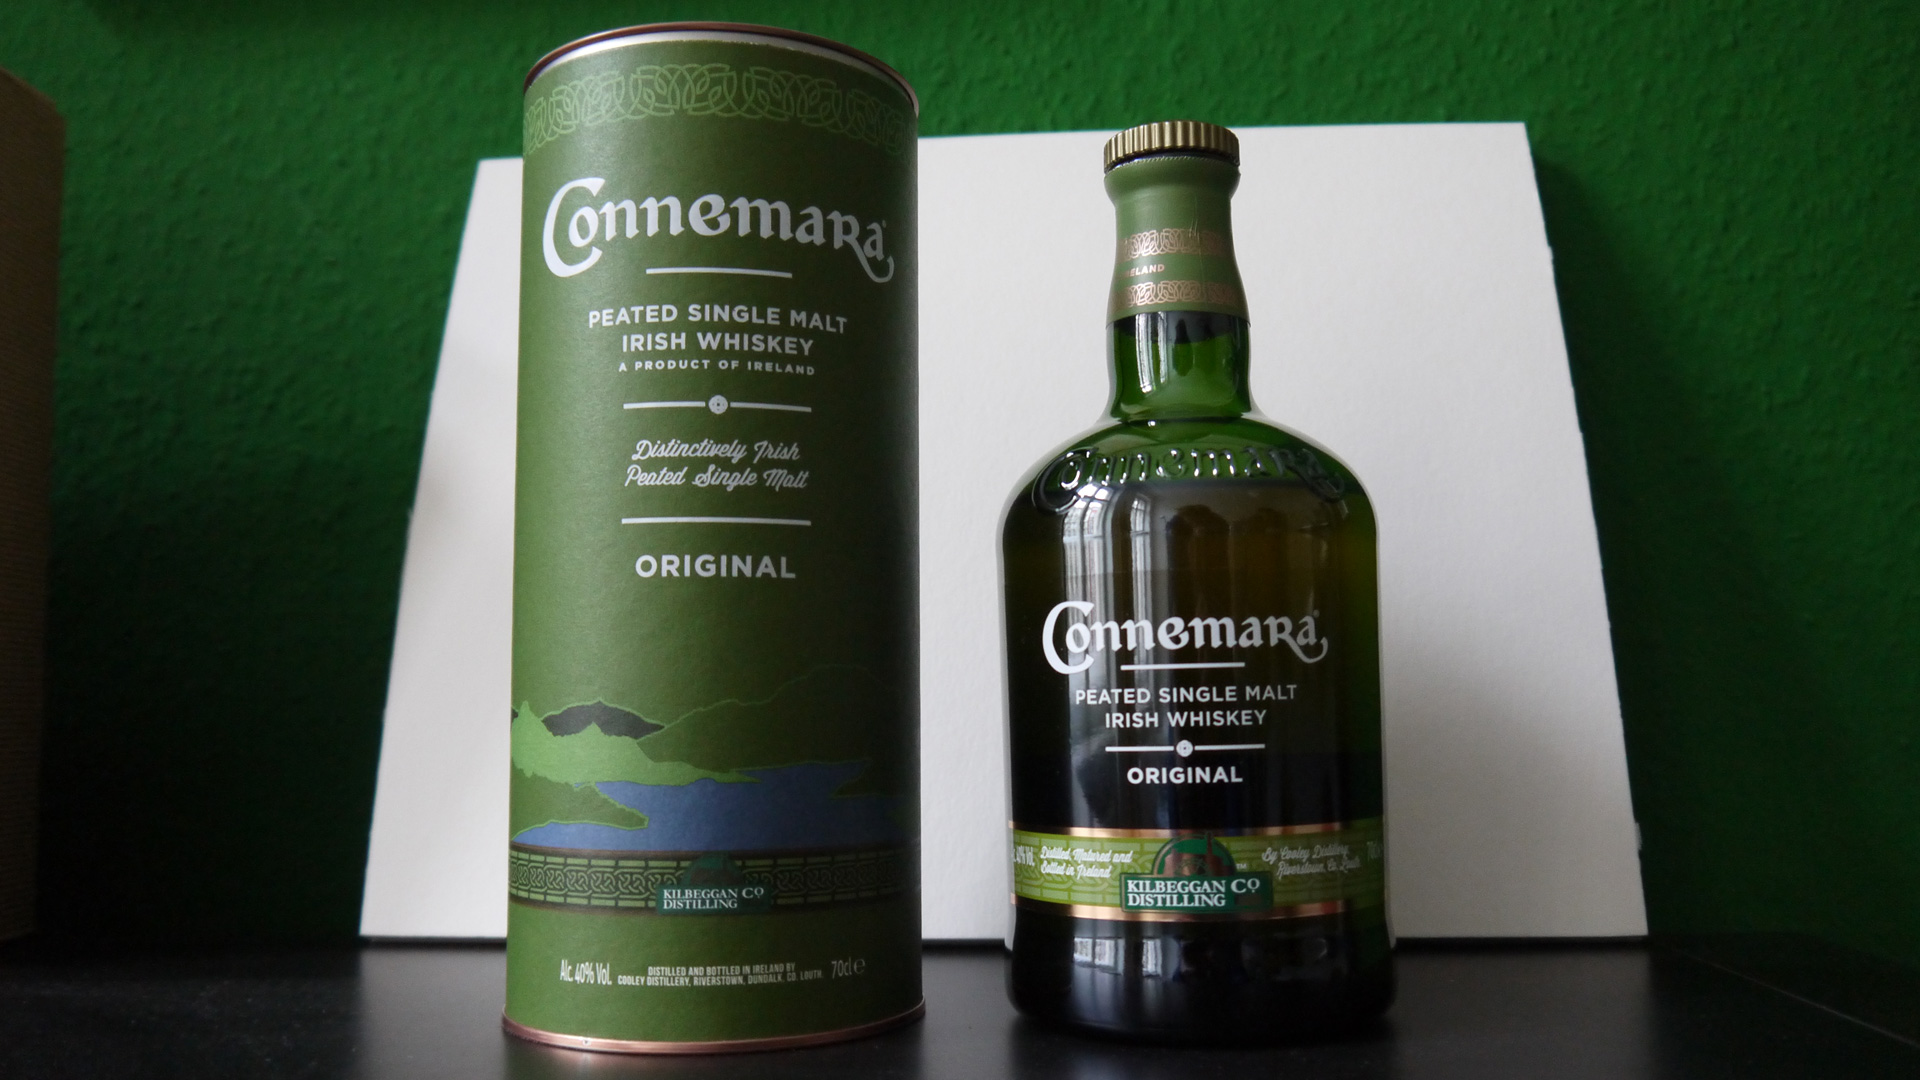 Eine Flasche in irischem Grün: Connemara Peated Single Malt Whiskey. (Foto: Malt Whisky)